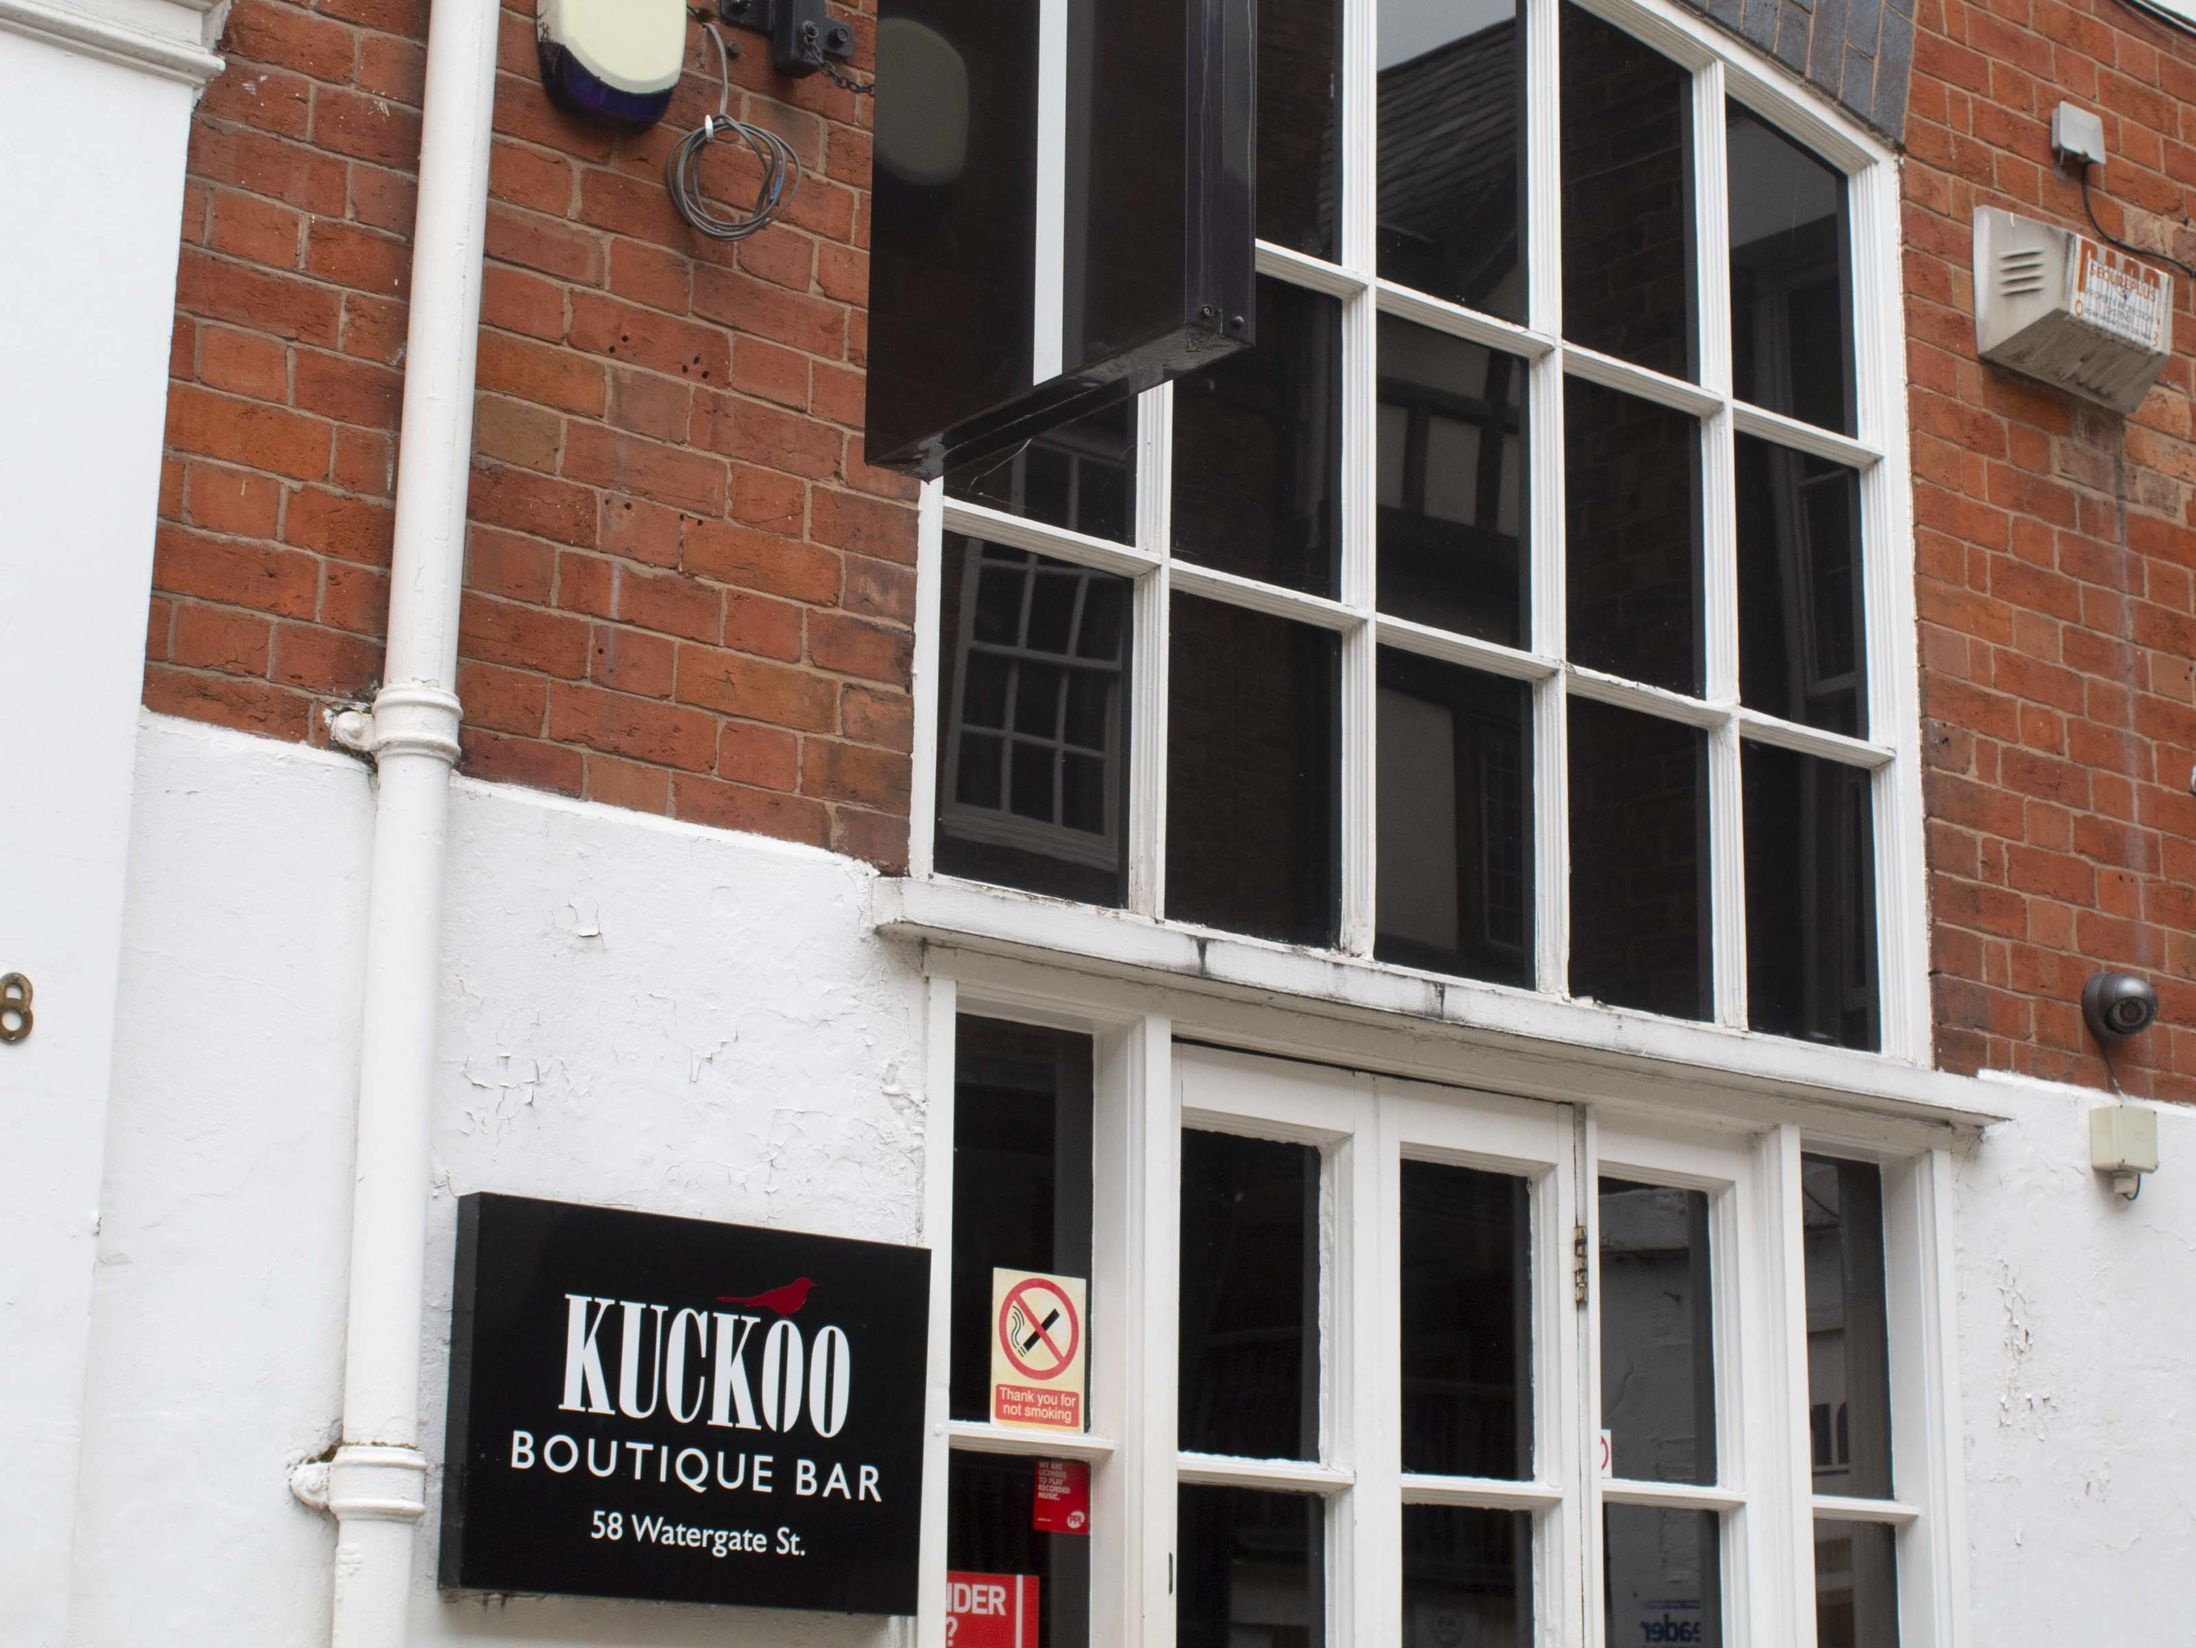 Kuckoo - Cocktail Bars in Chester